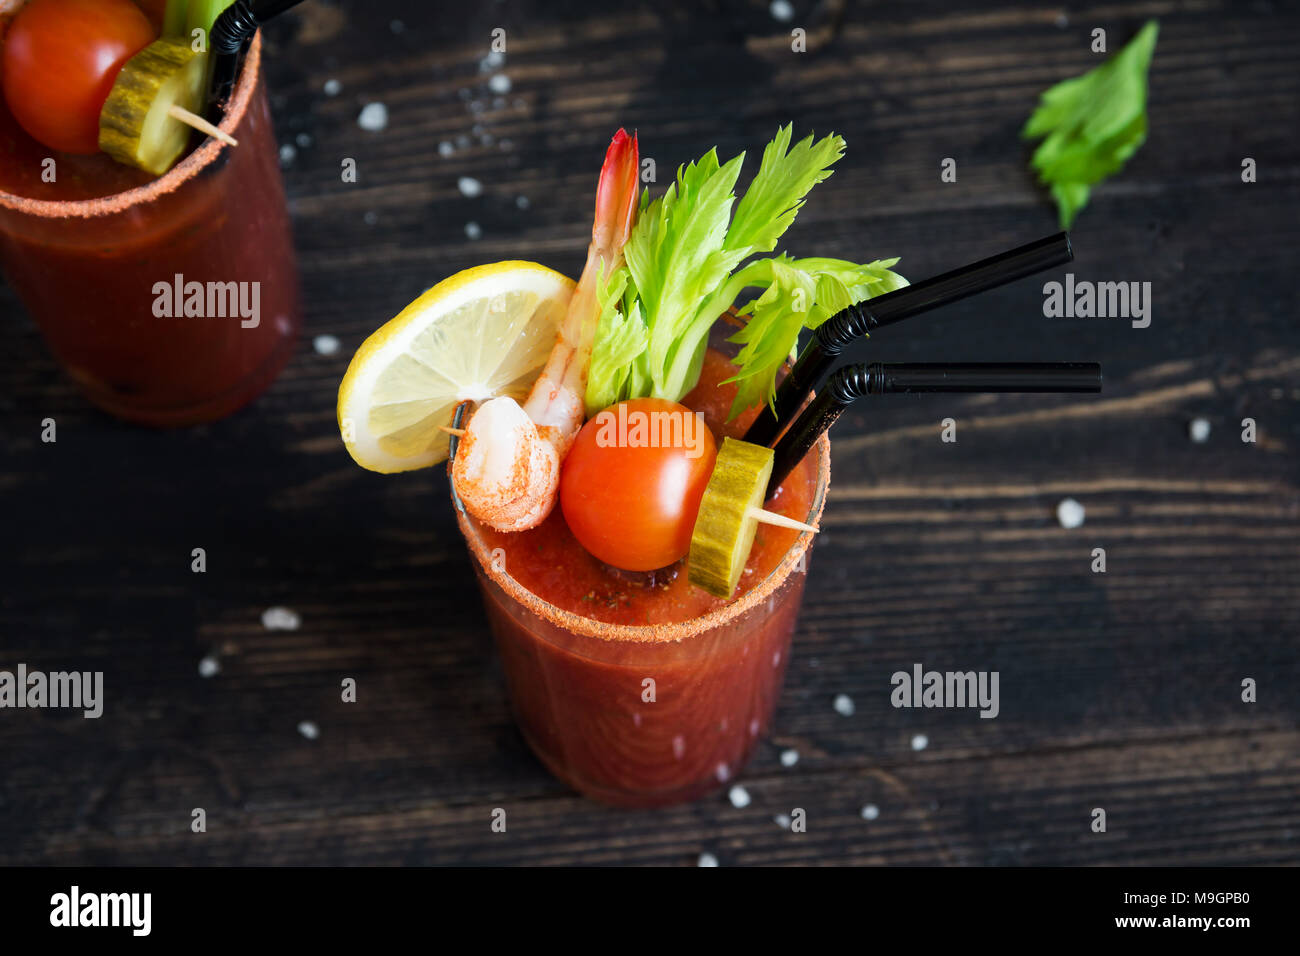 Bloody Mary Cocktail in glass with garnishes. Tomato Bloody Mary spicy drink on black background with copy space. - Stock Image